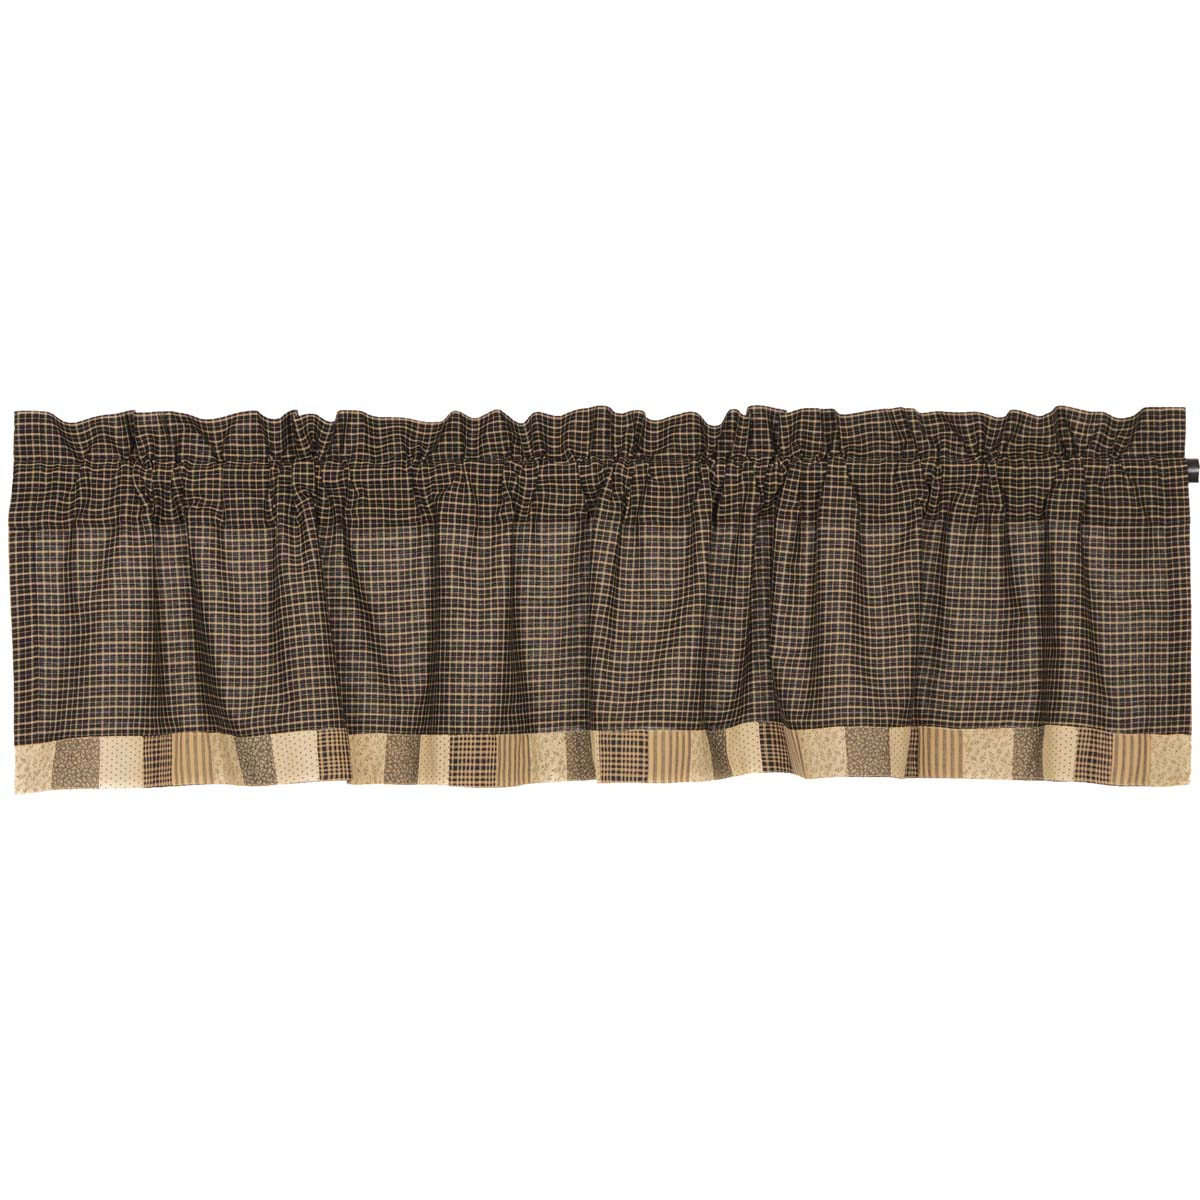 Kettle Grove Valance Block Border 16x72